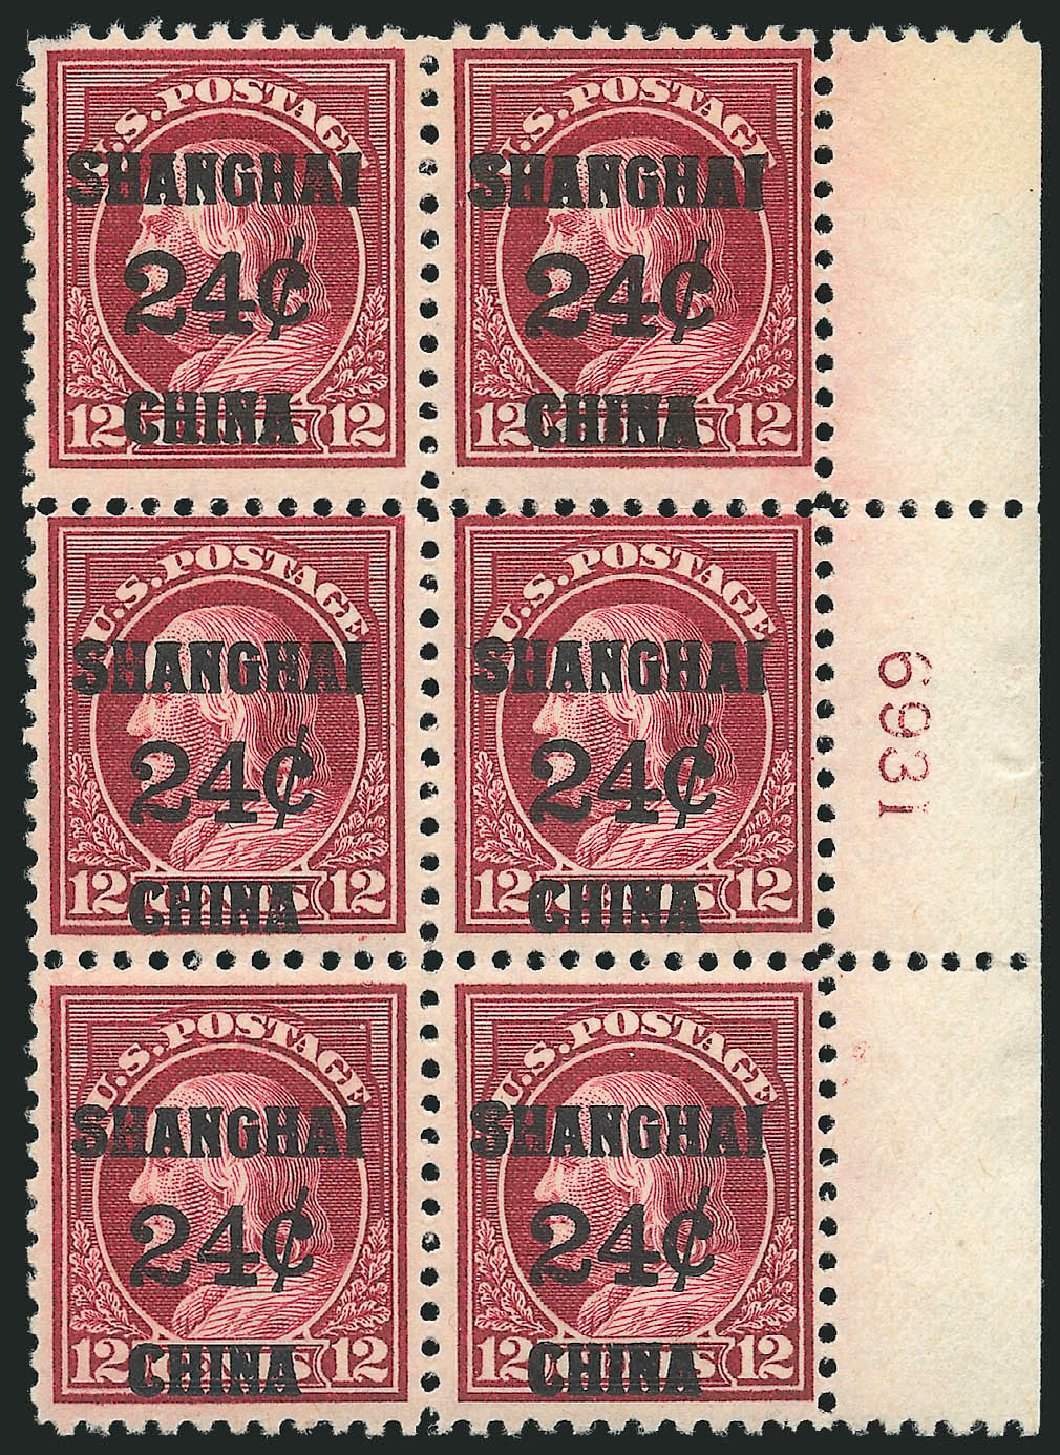 Prices of US Stamp Scott Catalogue K11 - 24c 1919 China Shanghai on 12c. Robert Siegel Auction Galleries, Apr 2015, Sale 1096, Lot 881